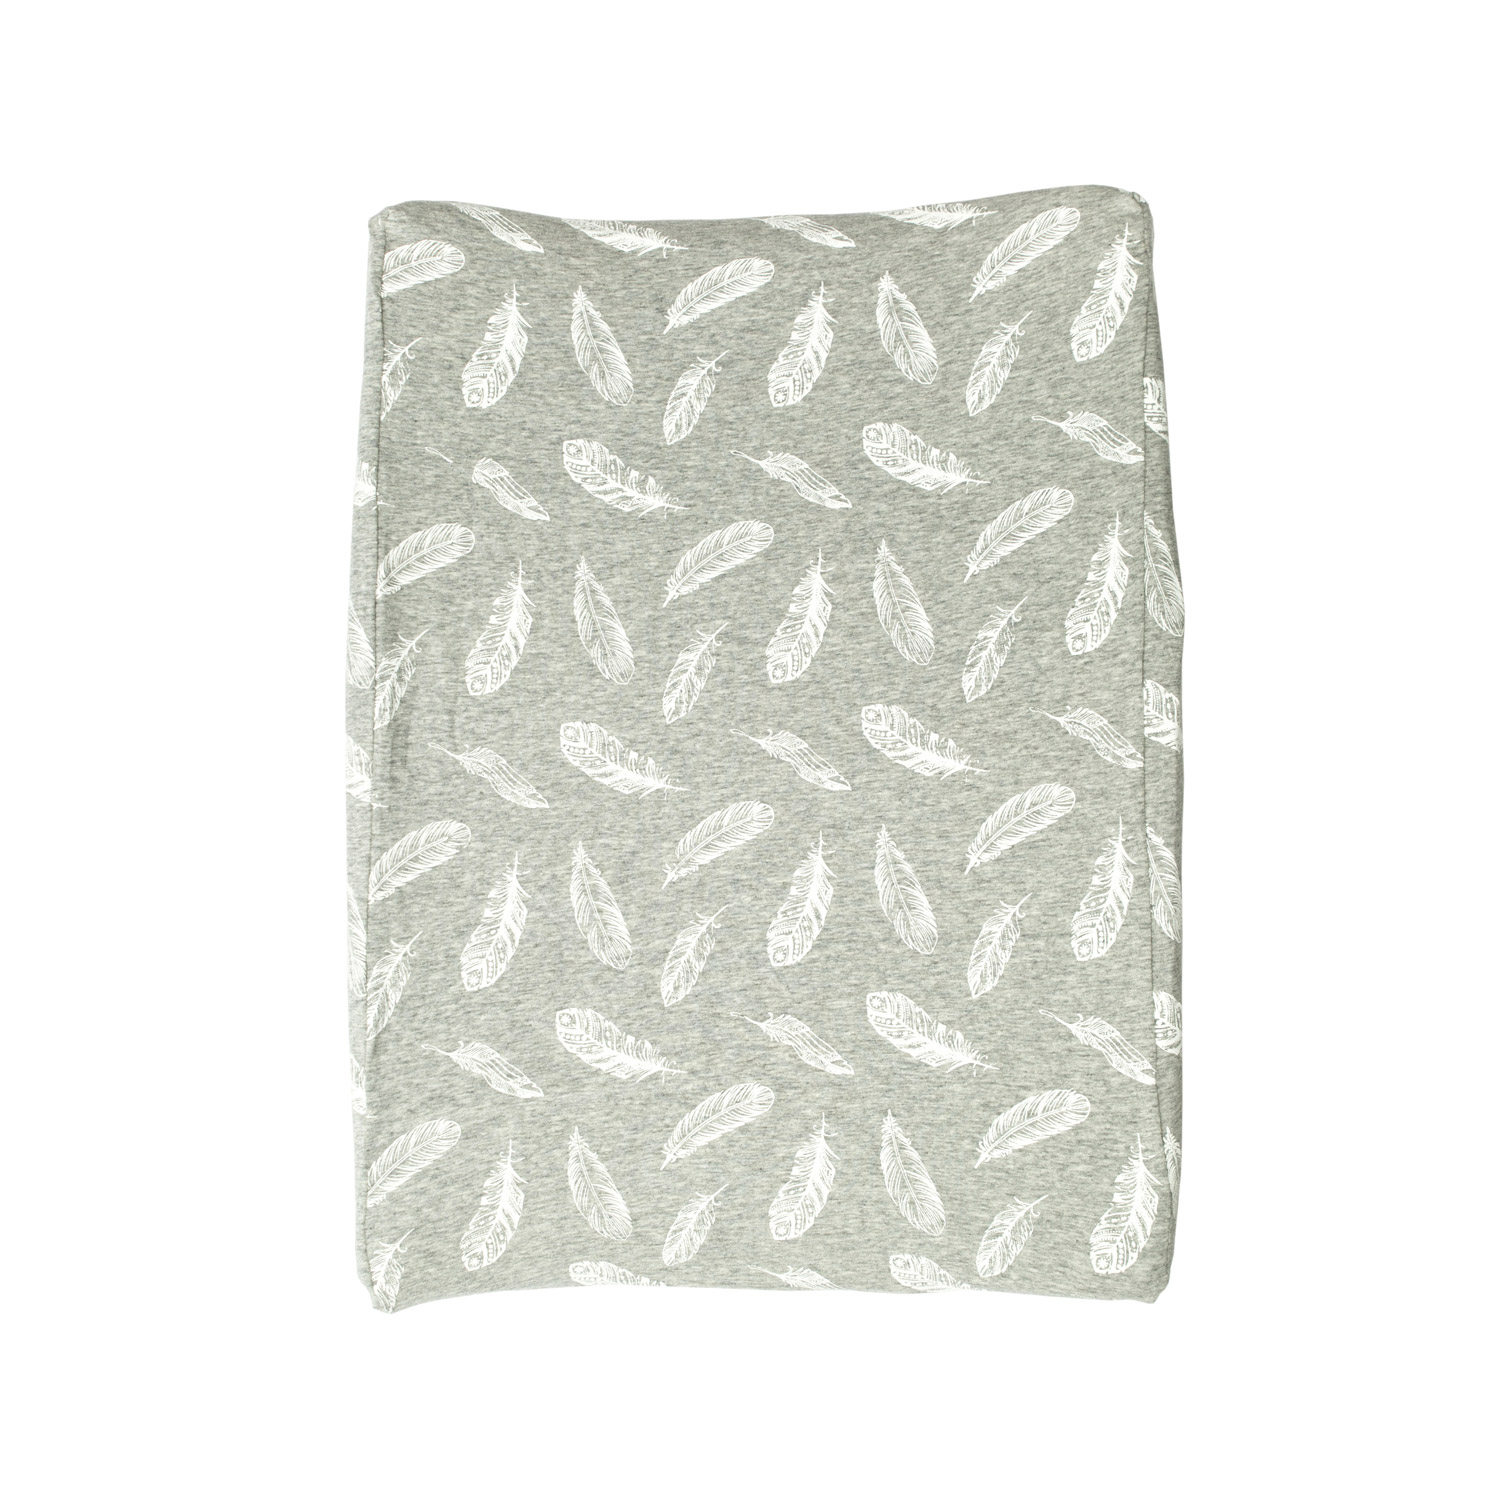 Change Mat Cover - Grey & White Feathers